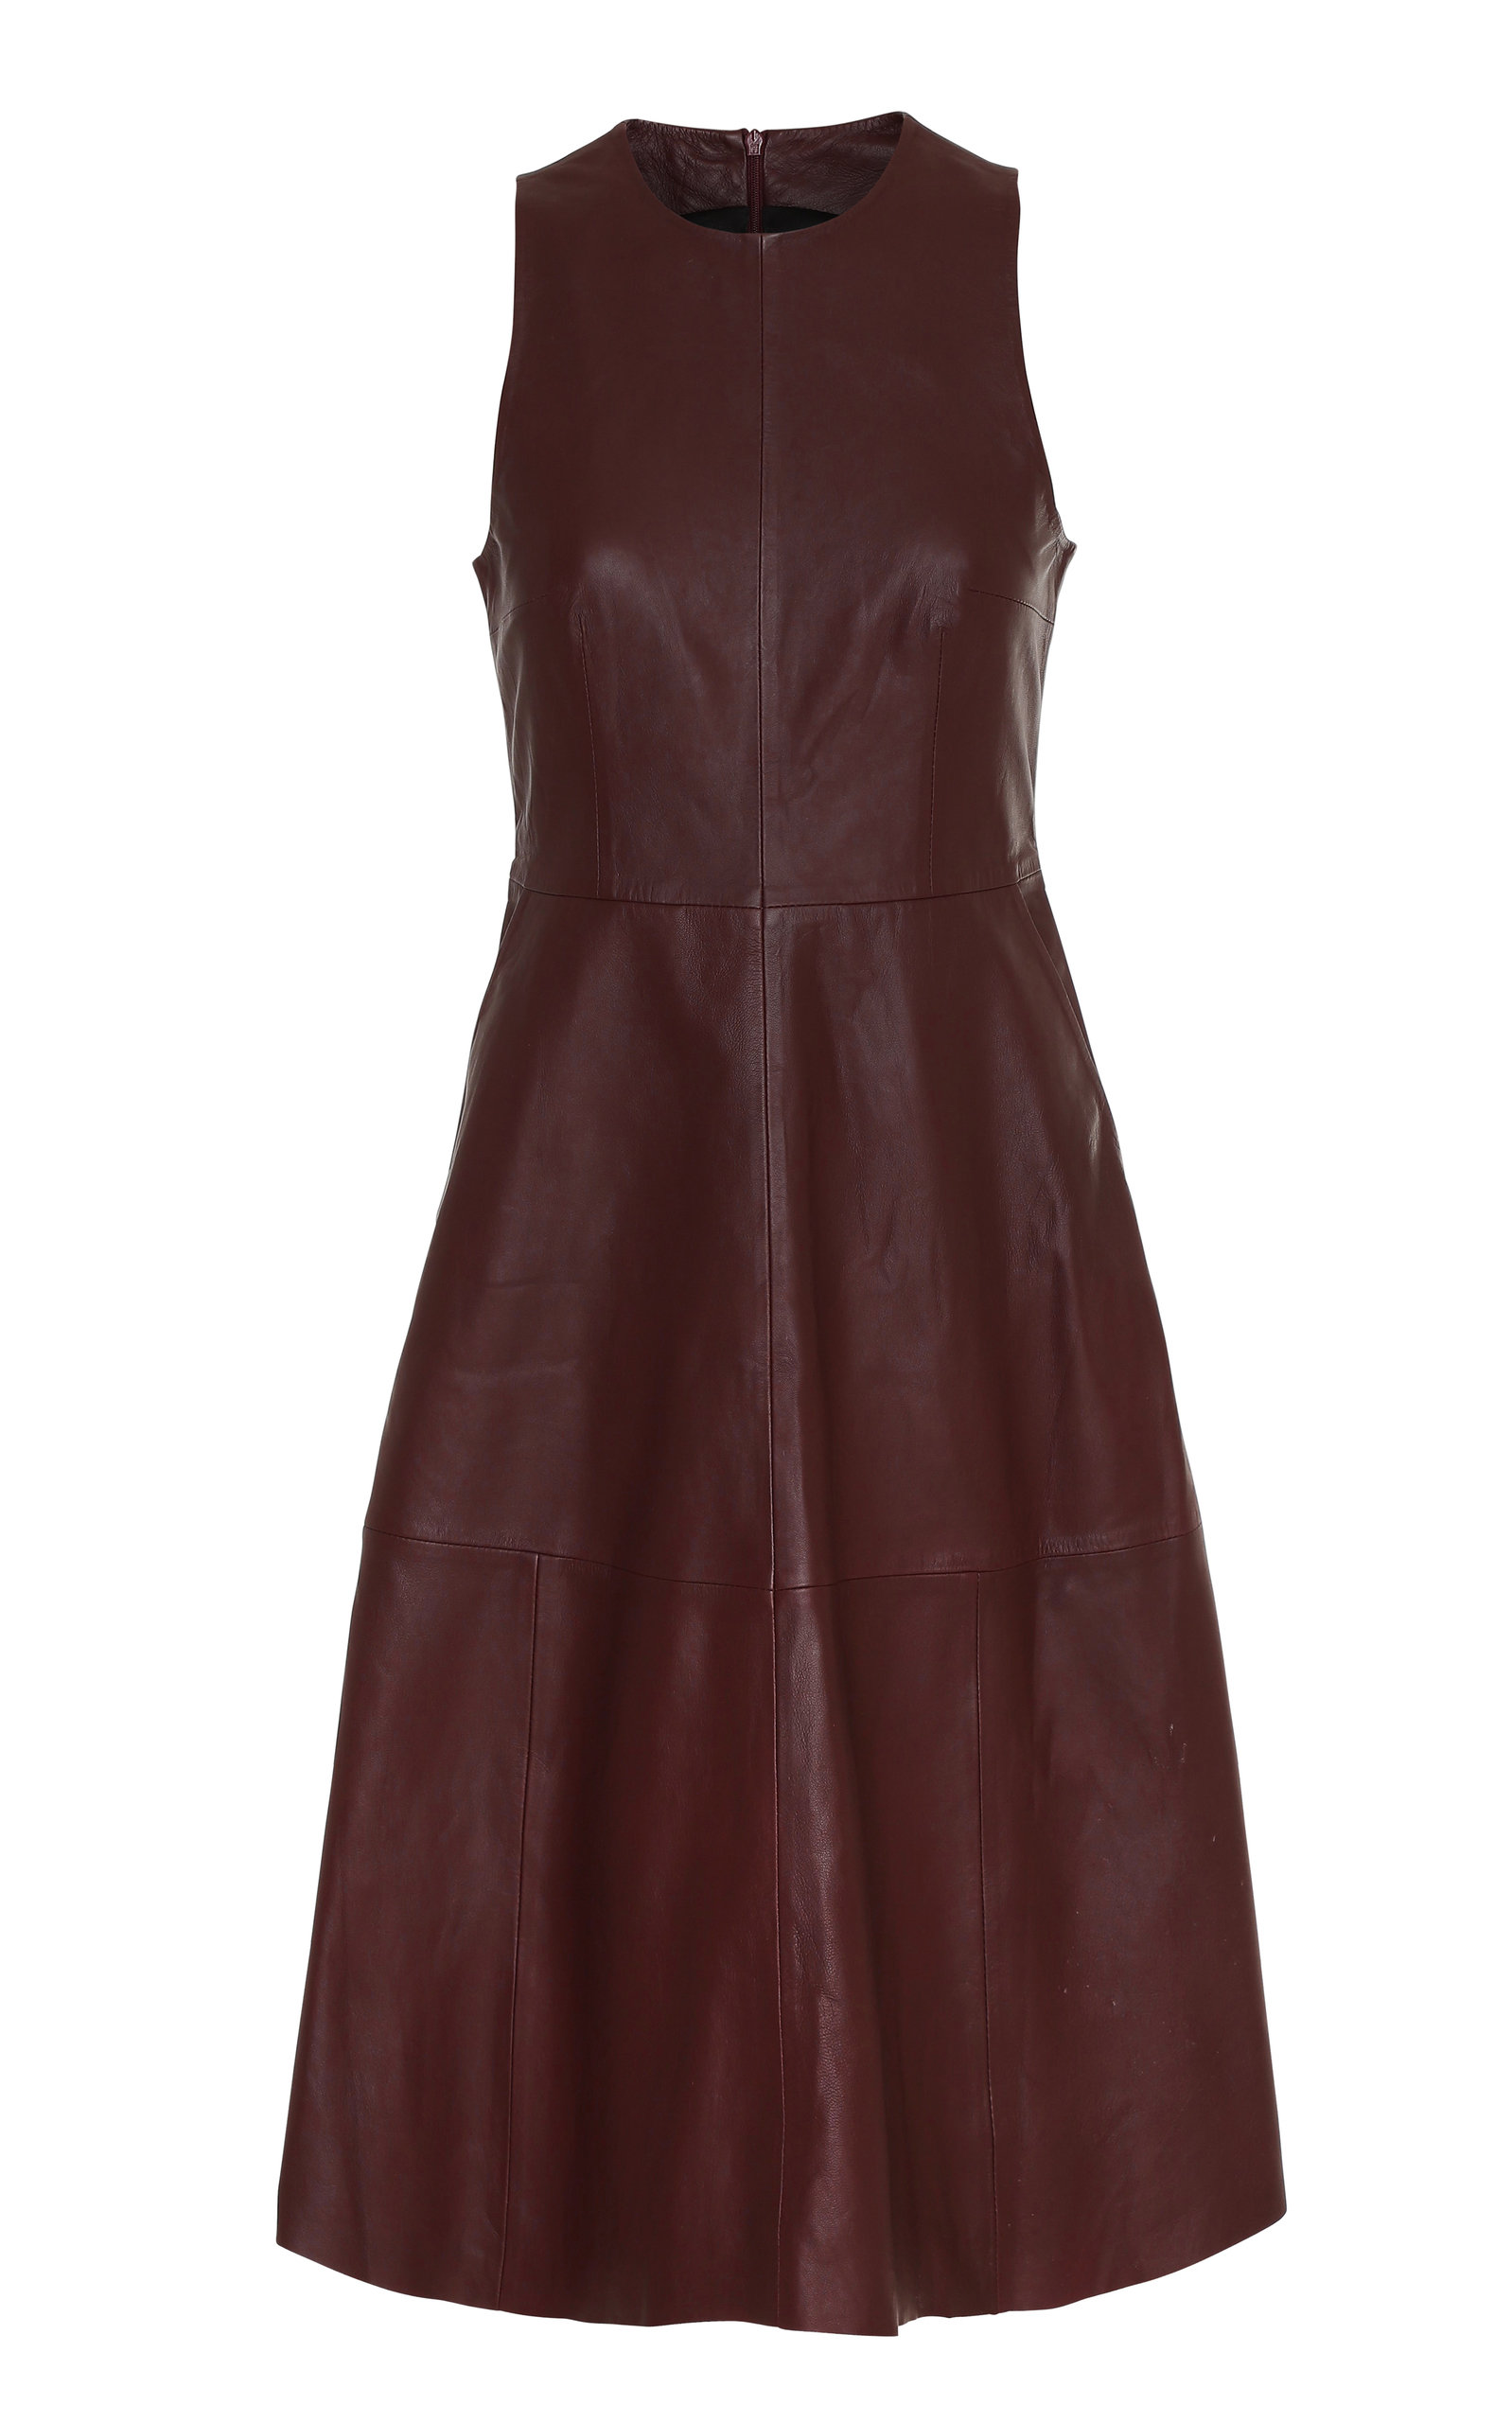 Buy Remain Portia Leather Dress online, shop Remain at the best price